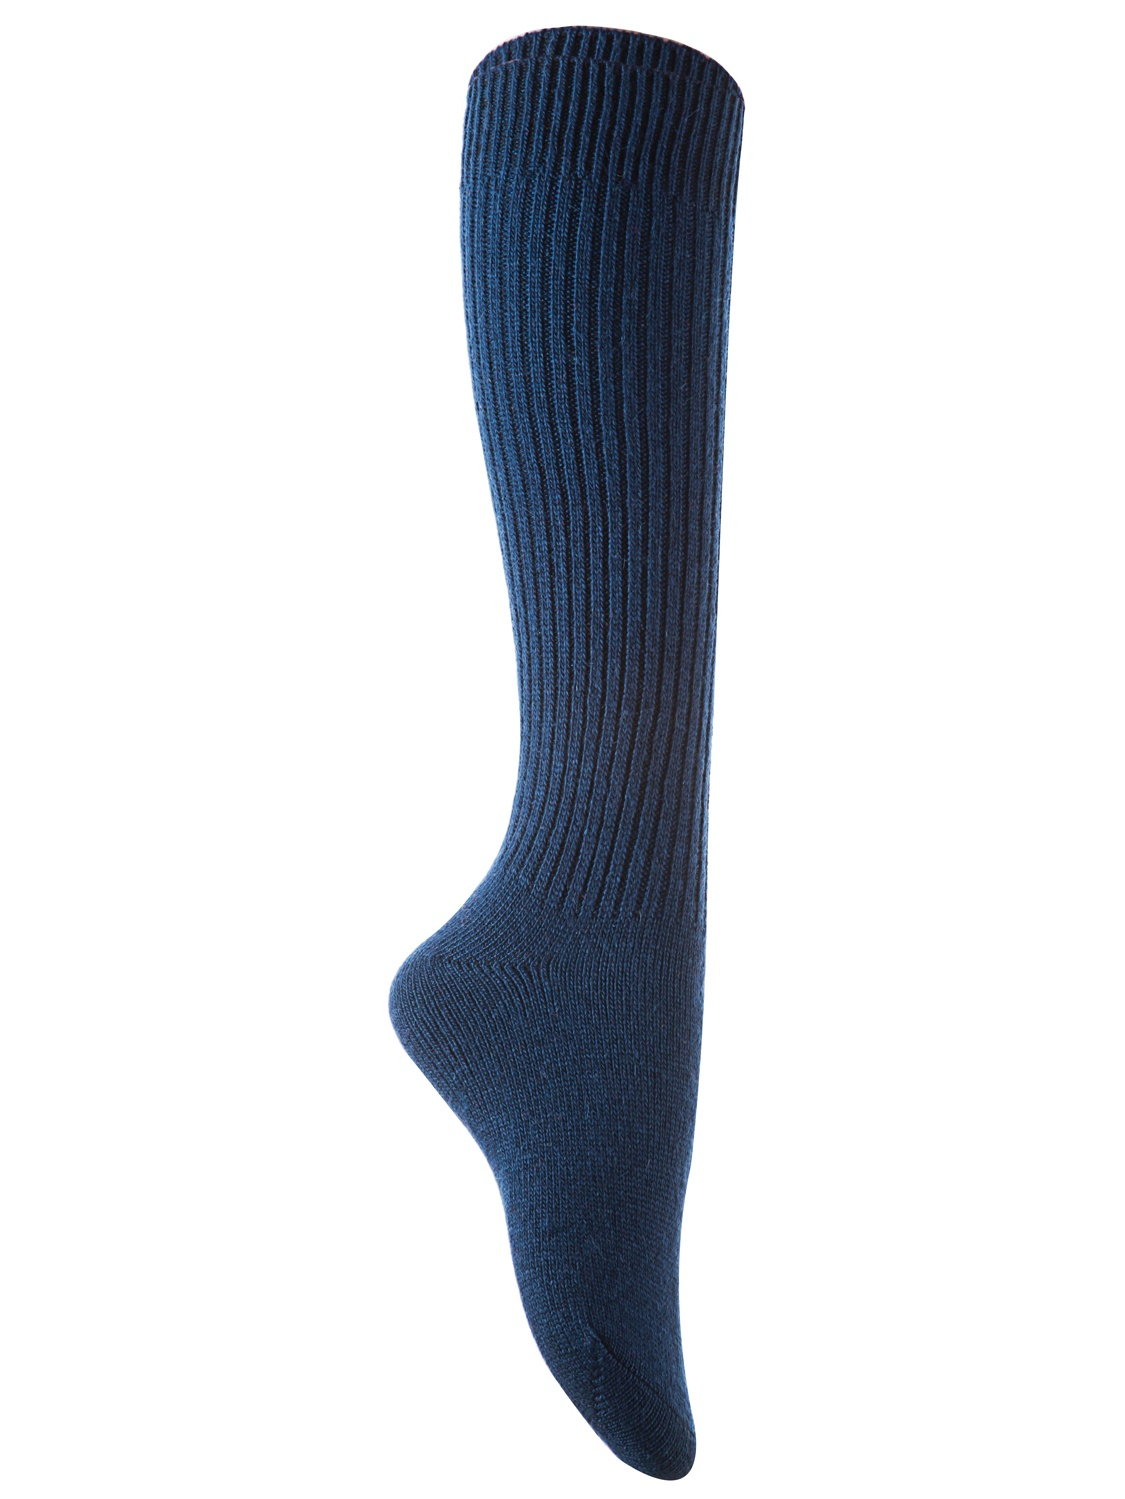 Lian LifeStyle Big Girl's 4 Pairs Knee High Knitted Wool Socks Stripped FS05 Size 6-9(Black,Grey,Beige,Brown)